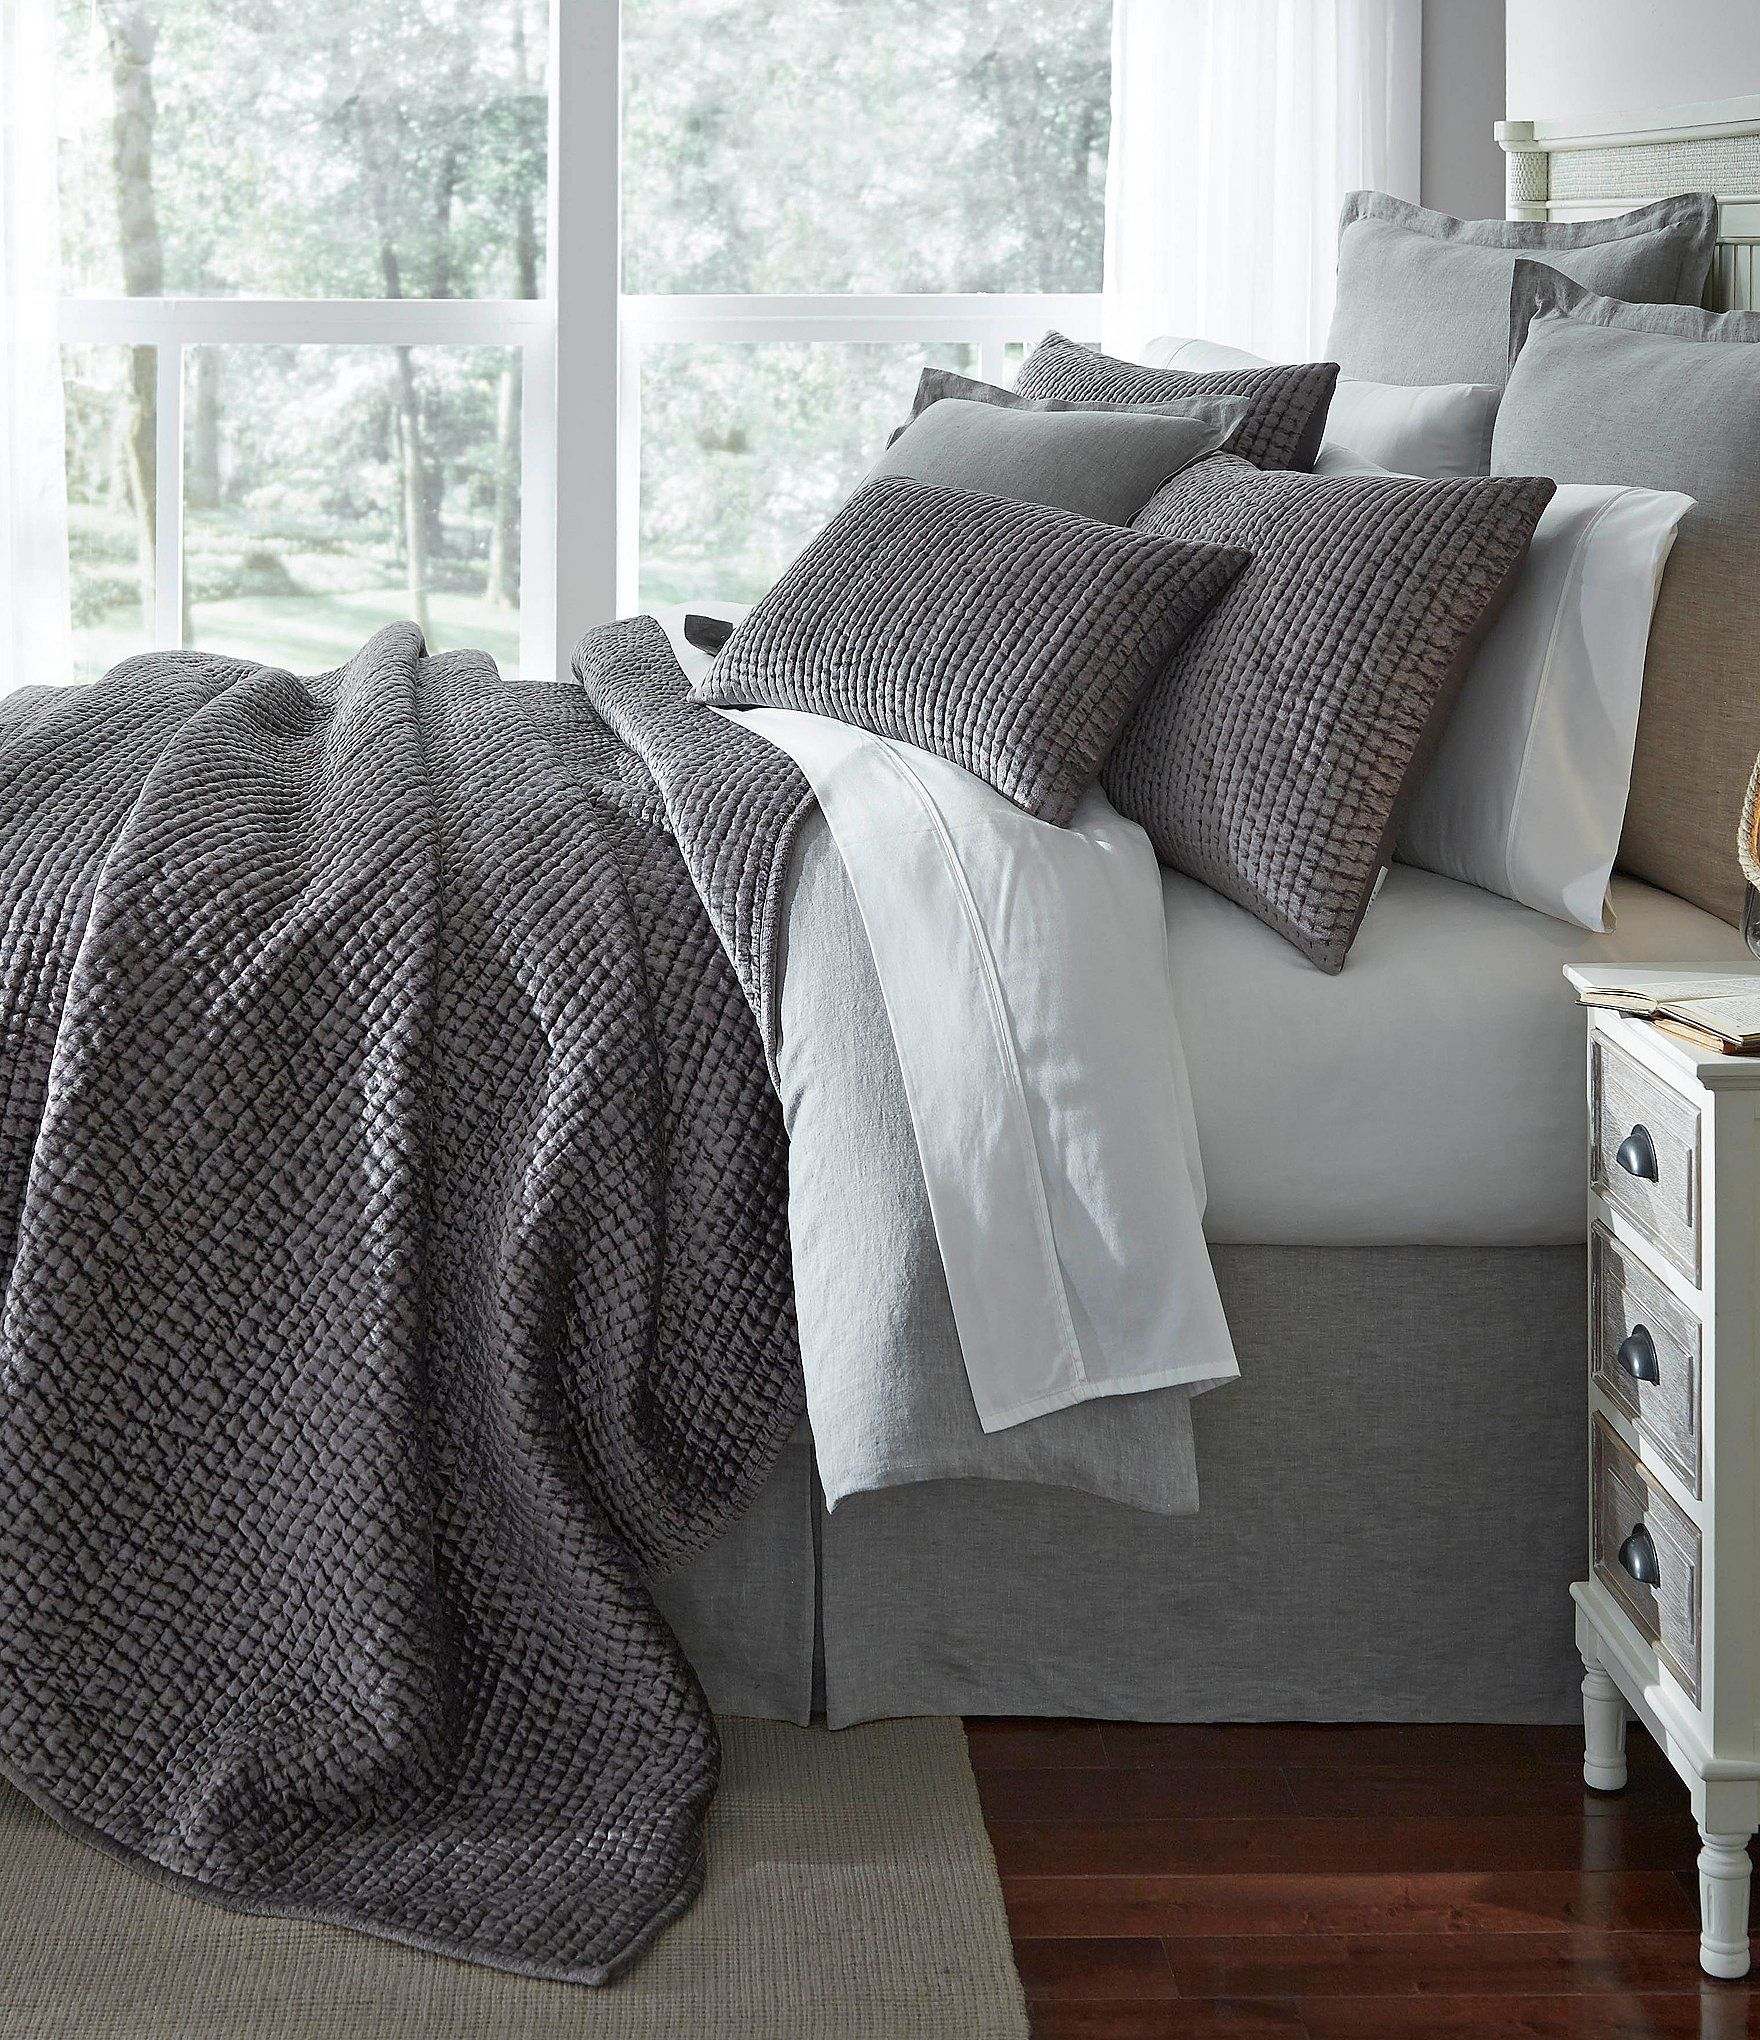 house coordinates size bedding living bed medium best of southern idea